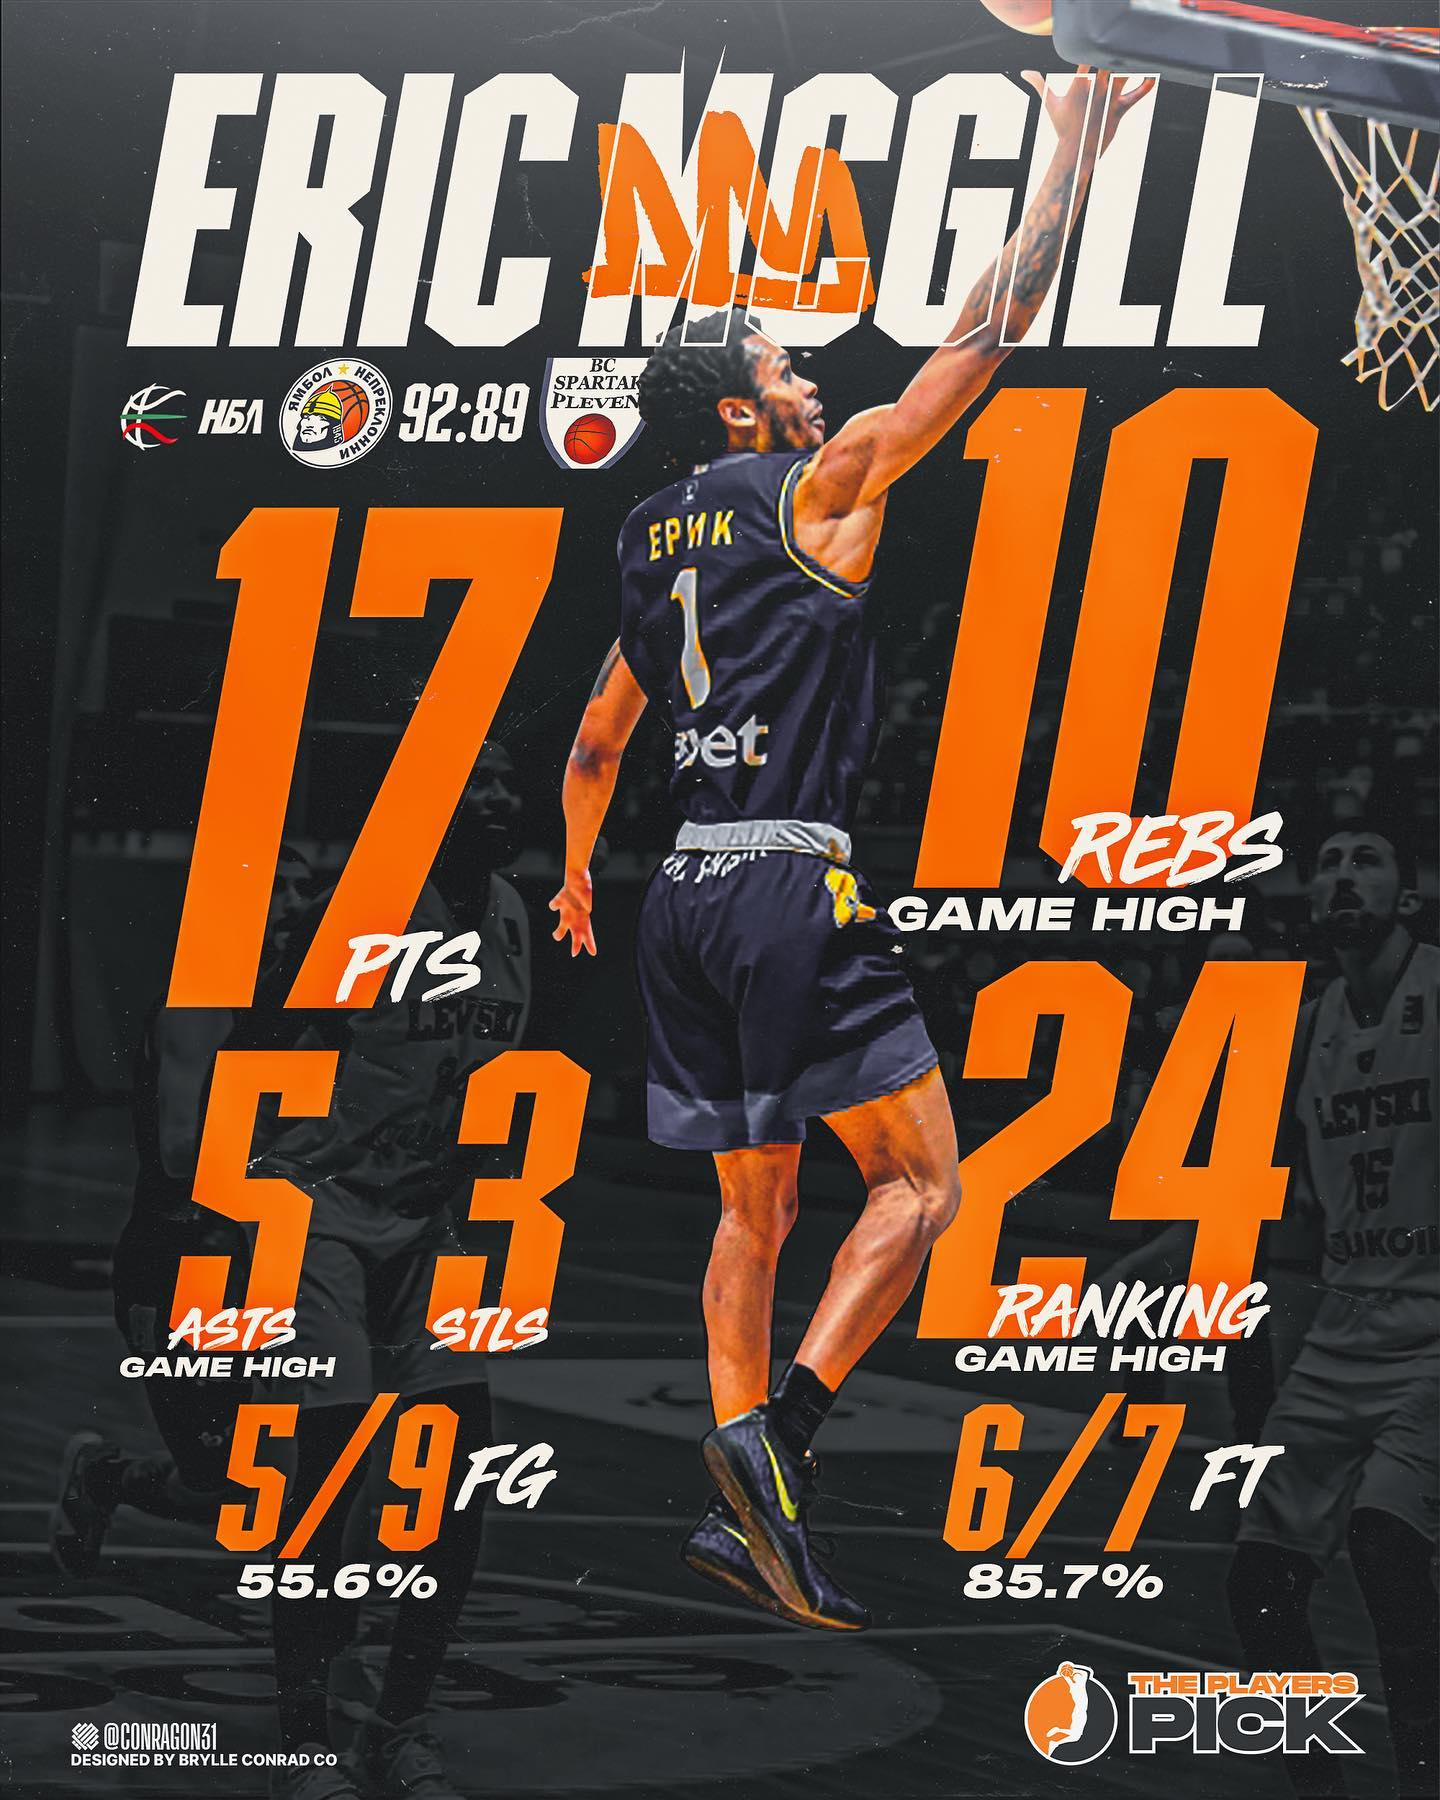 Top class Eric McGill vs Spartak (17 points -10 boards – 5 assists – 3 steals)!